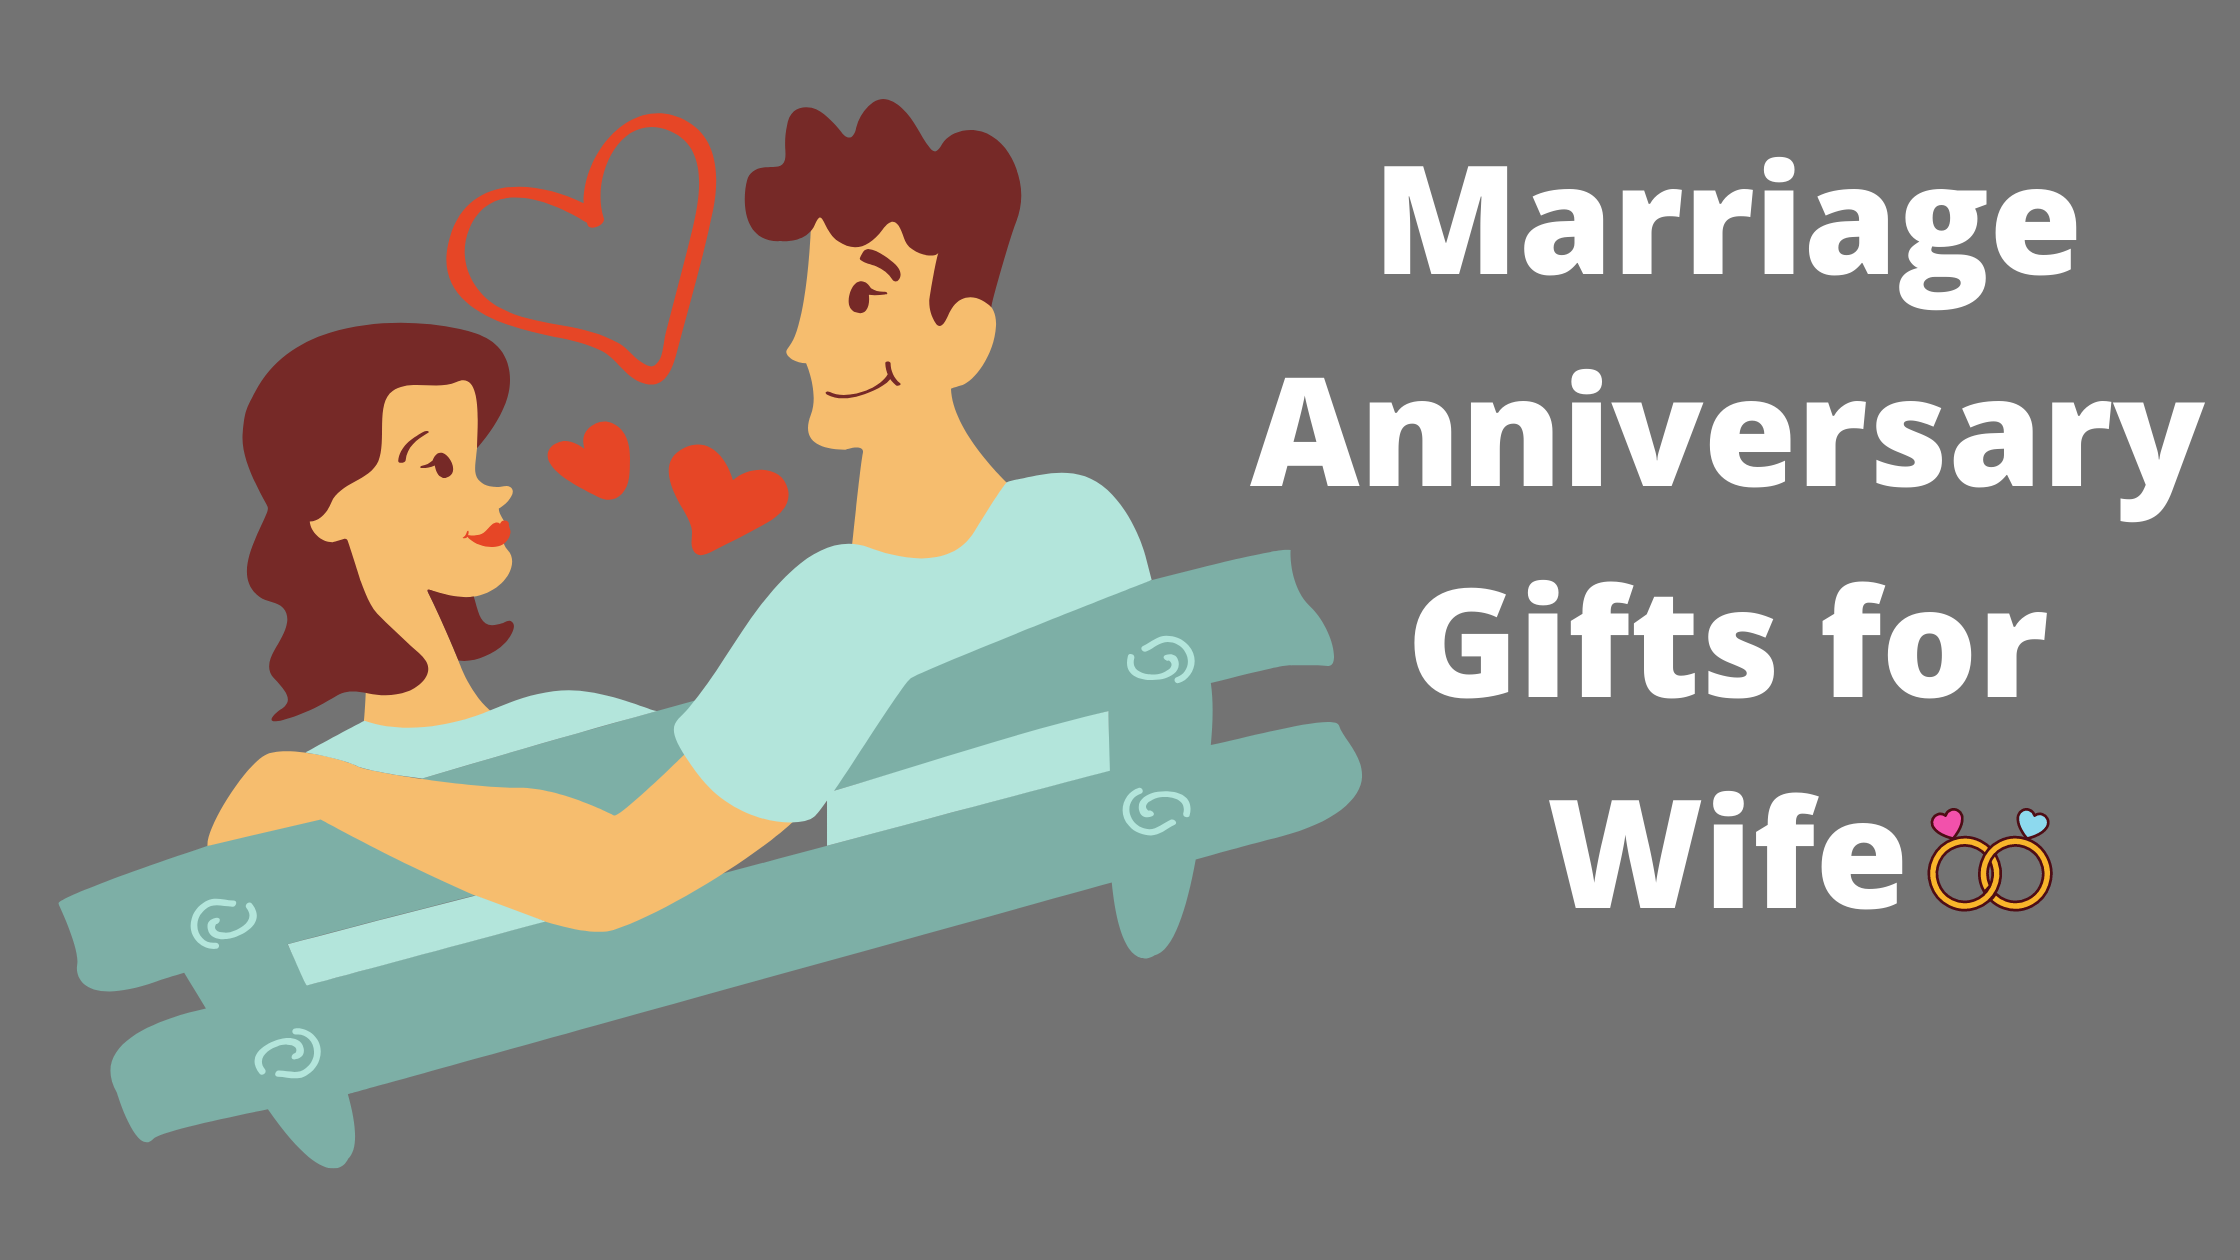 Marriage Anniversary Gifts for Wife